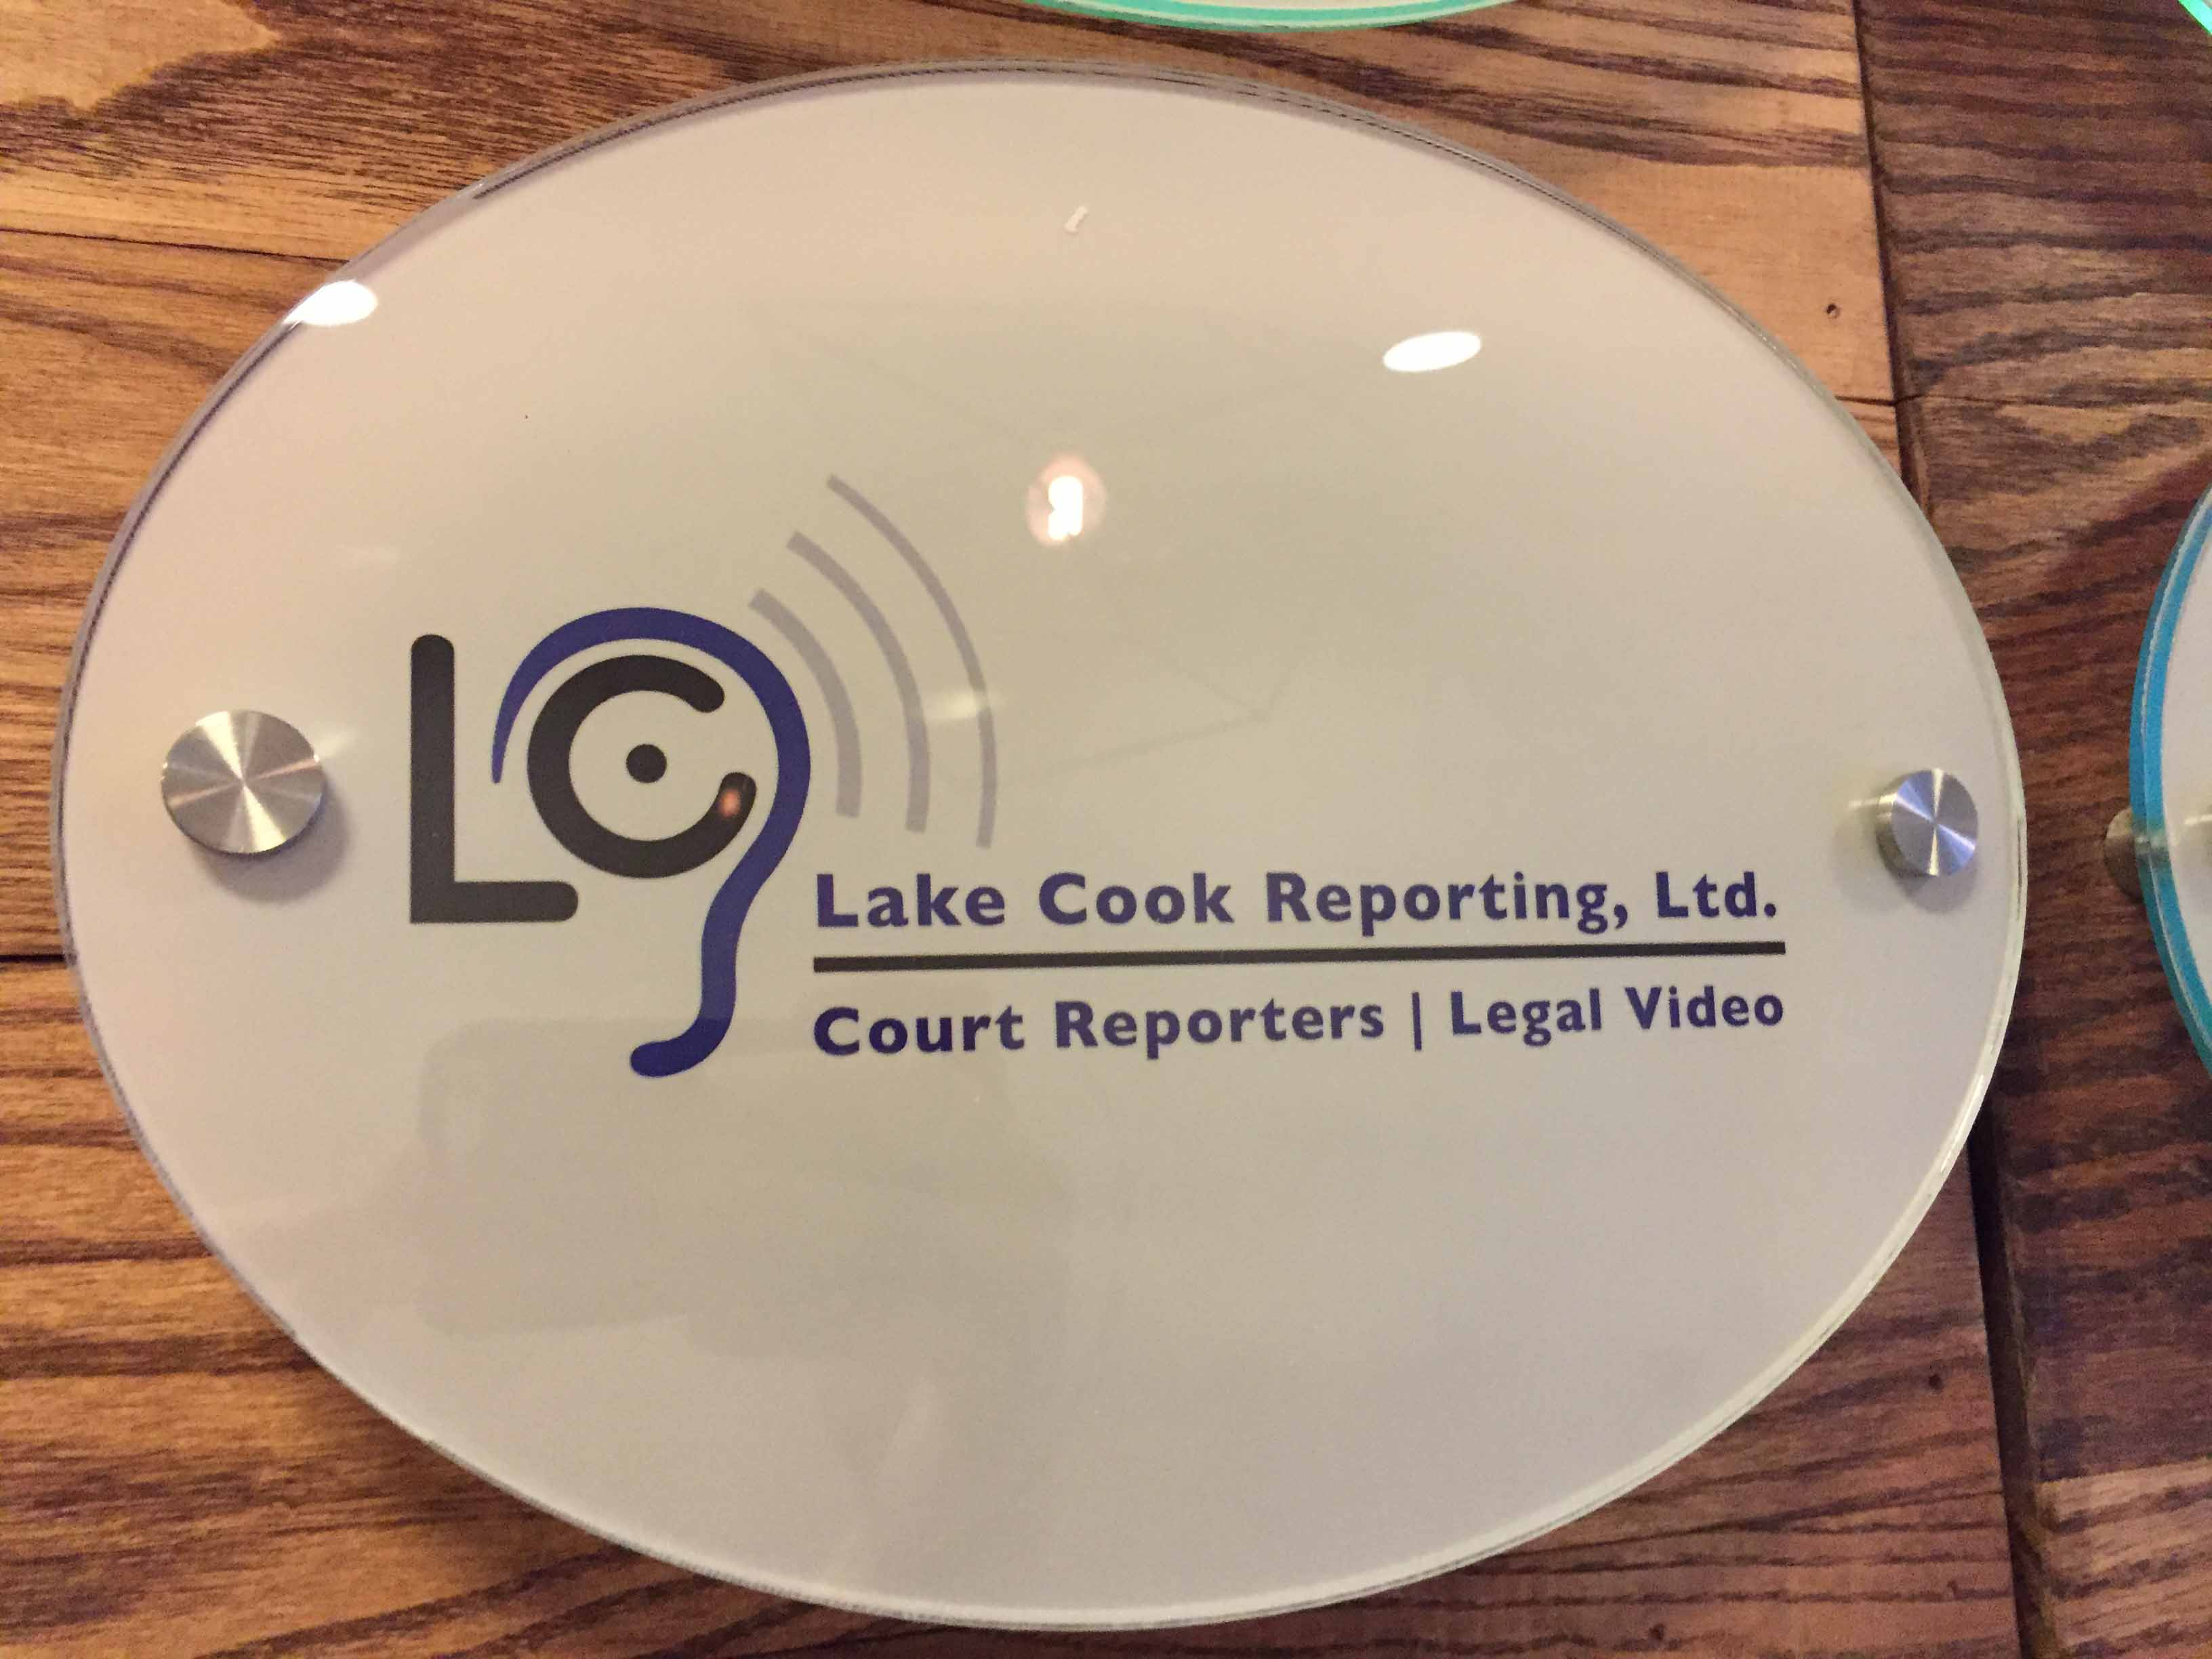 Lake Cook Reporting's Chicago Loop office sign.